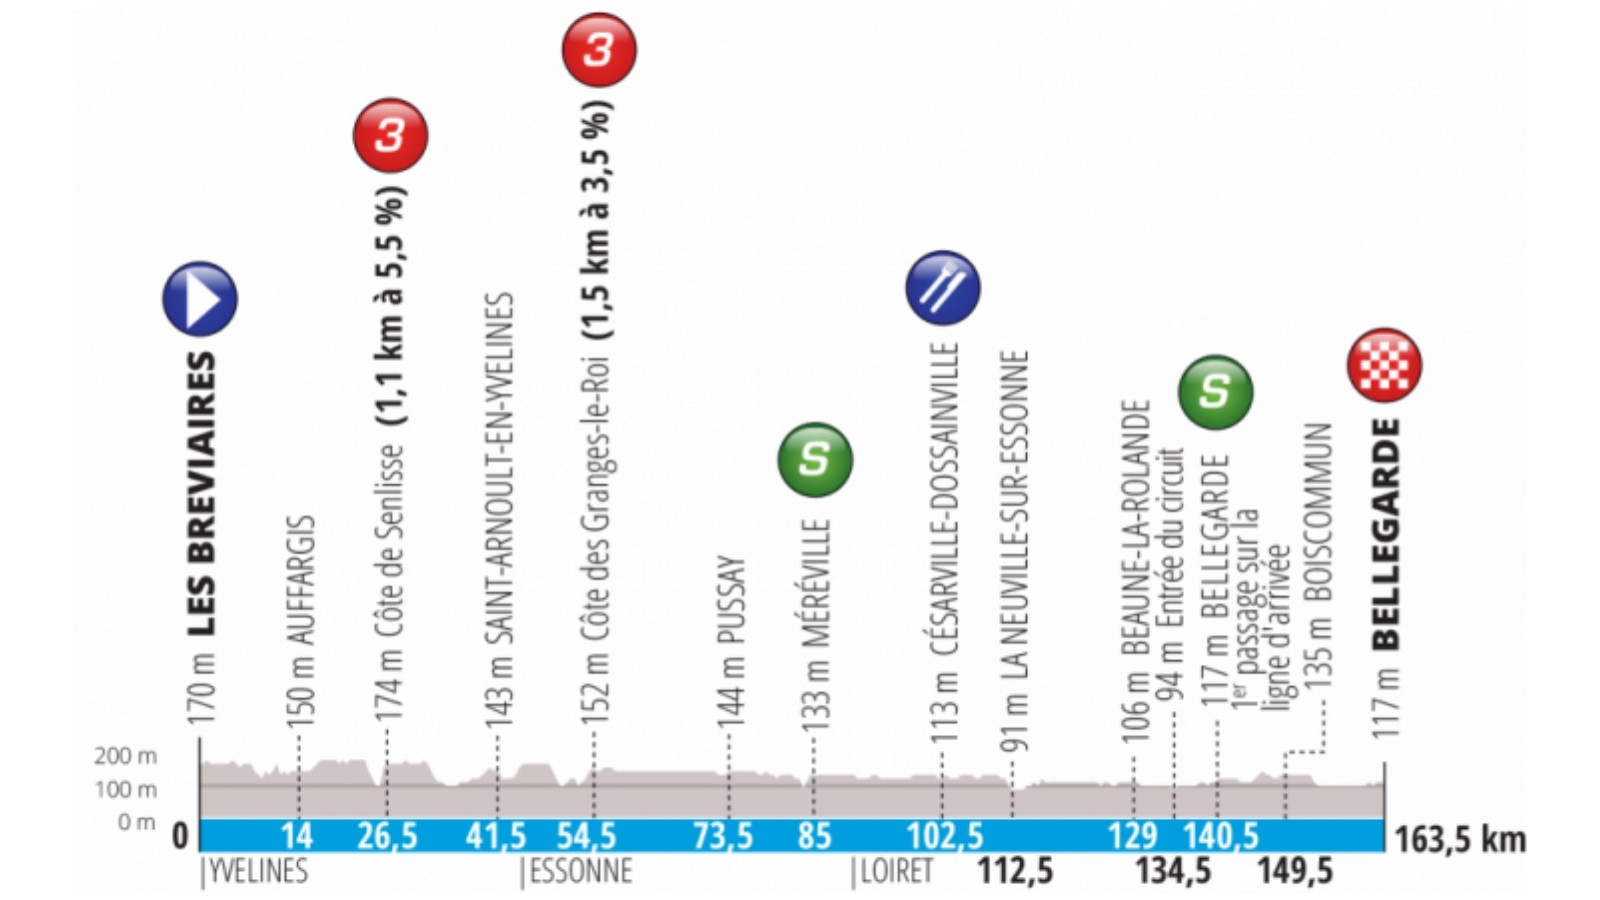 Stage 2 is a flat 163.5km route from Les Bréviaires to Bellegarde